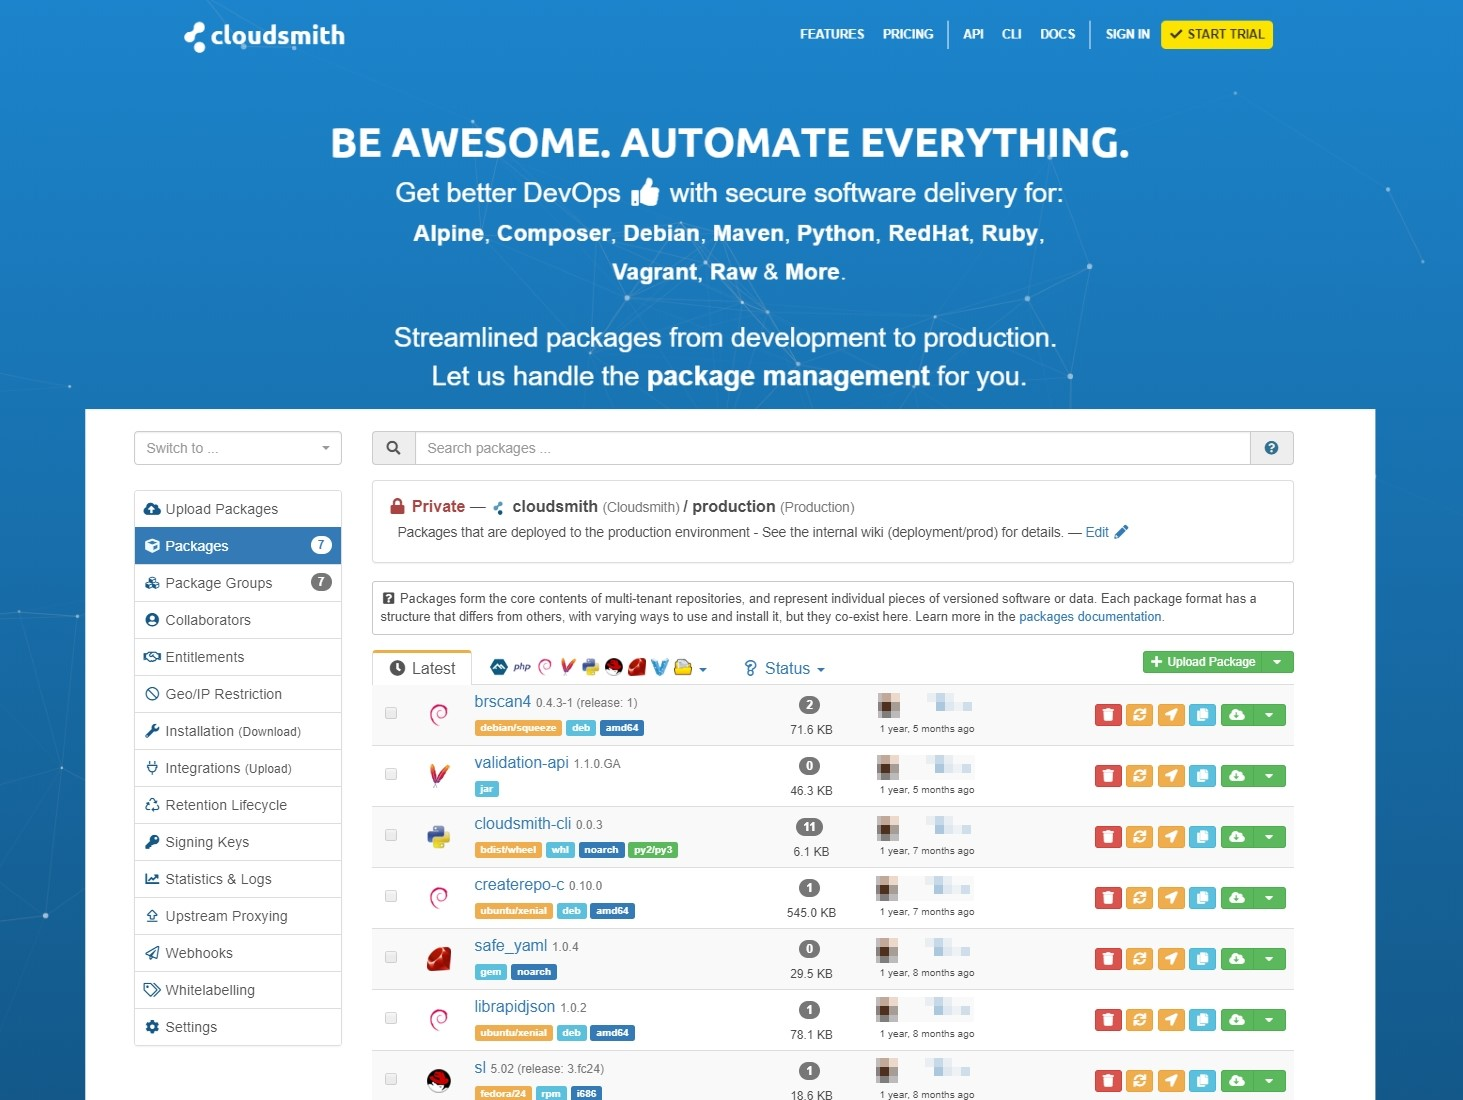 Cloudsmith Alternatives and Similar Websites and Apps